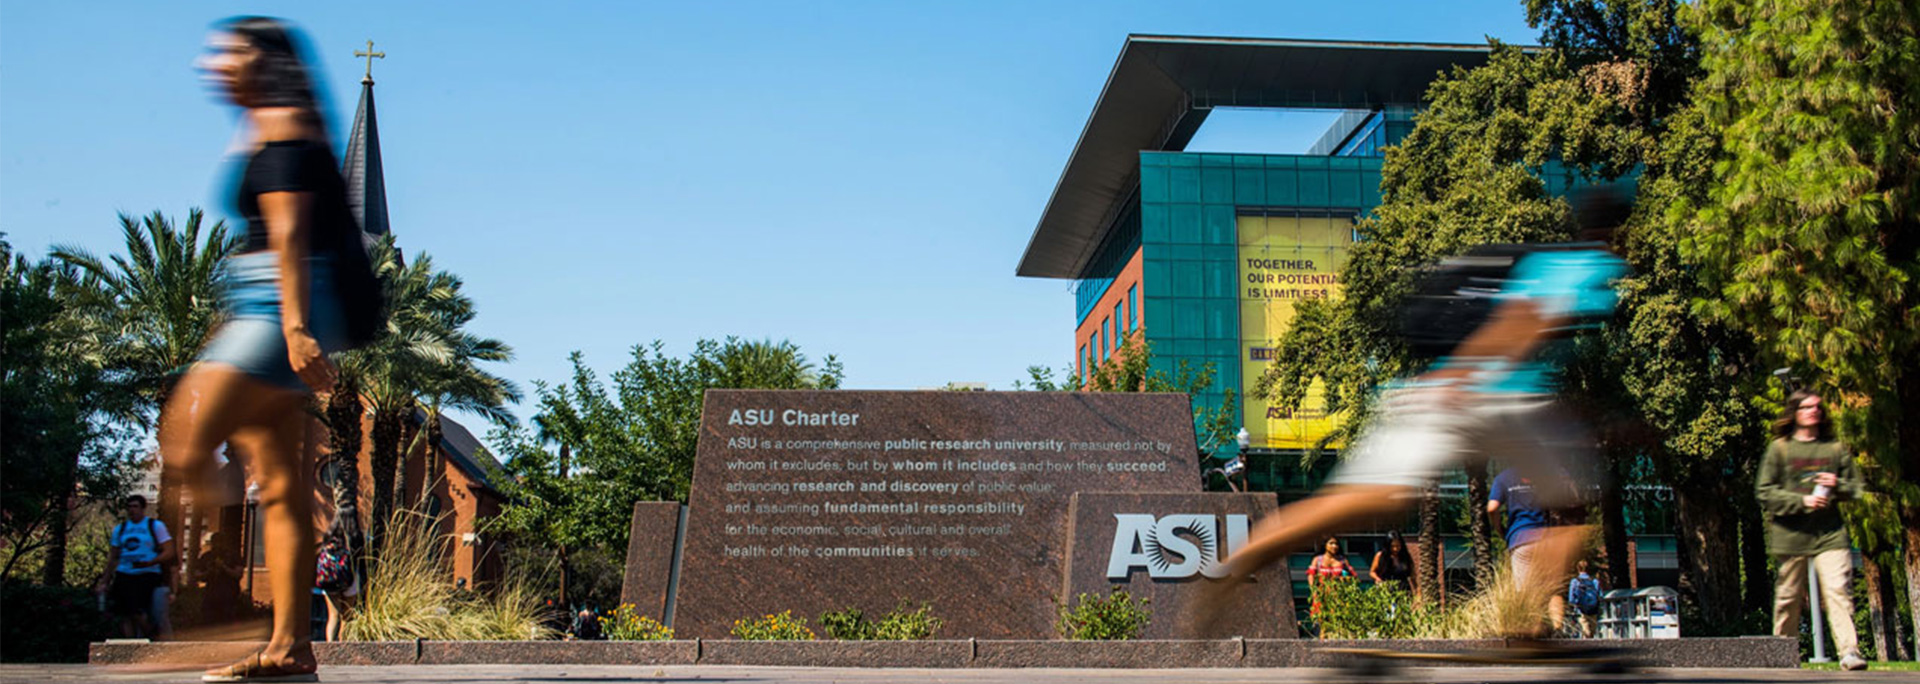 Students walk in front of the ASU Charter sign.